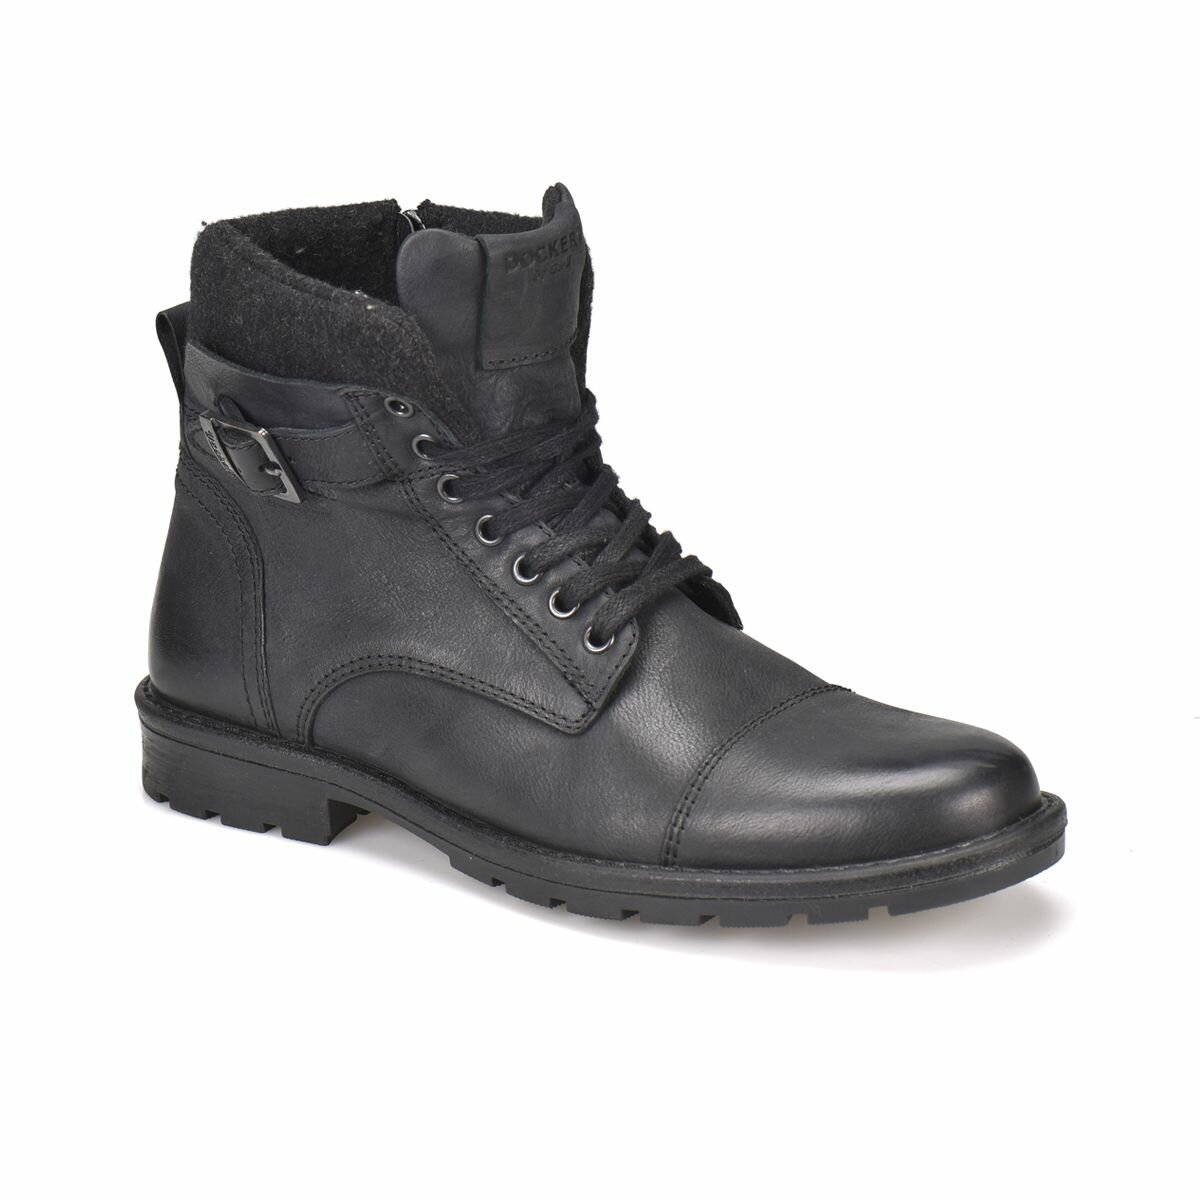 FLO 225222 Black Men Boots By Dockers The Gerle